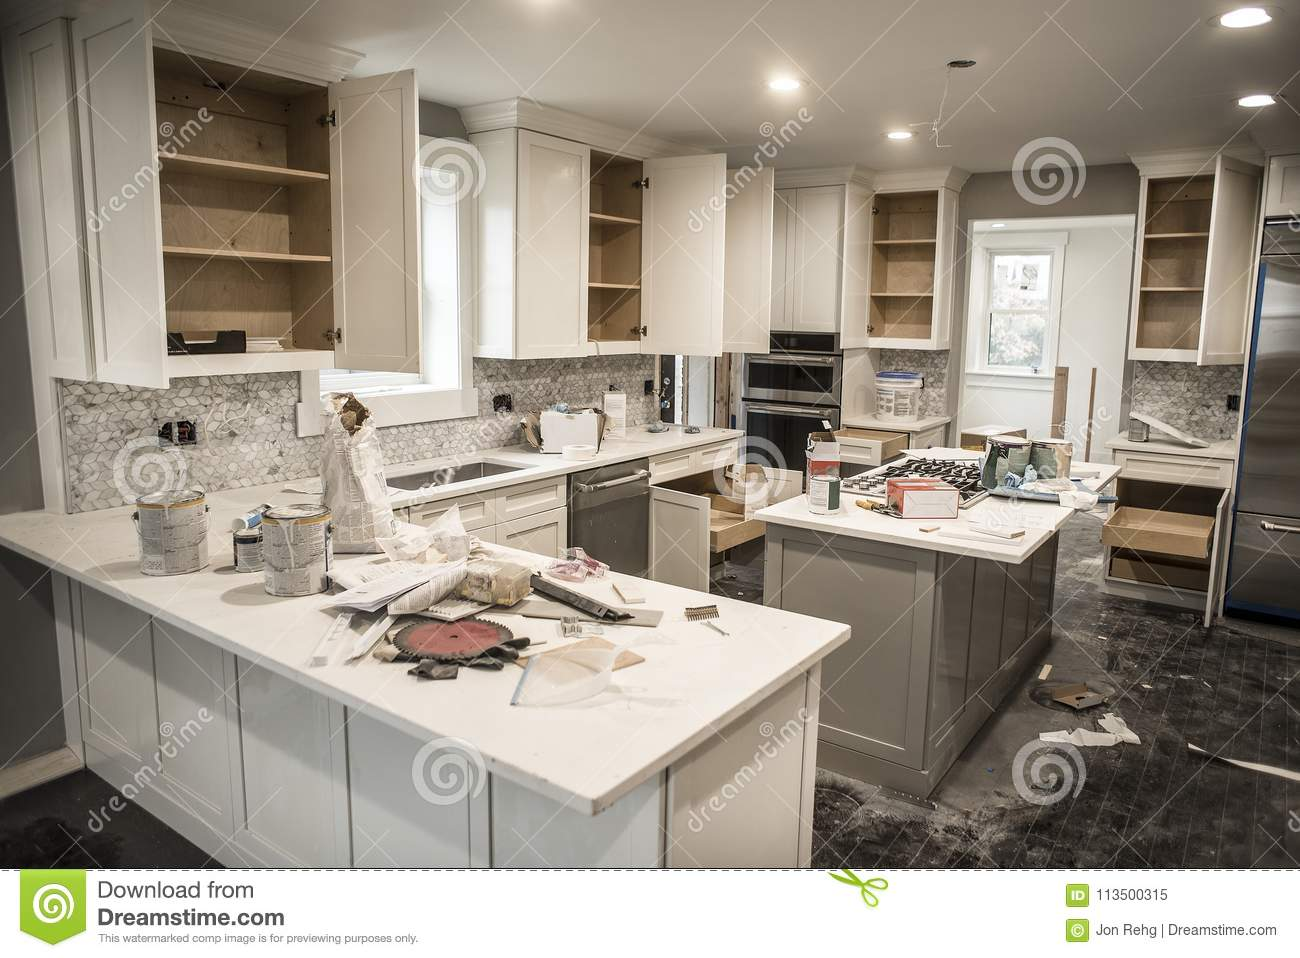 Messy home kitchen during remodeling with cabinet doors open download comp mozeypictures Image collections